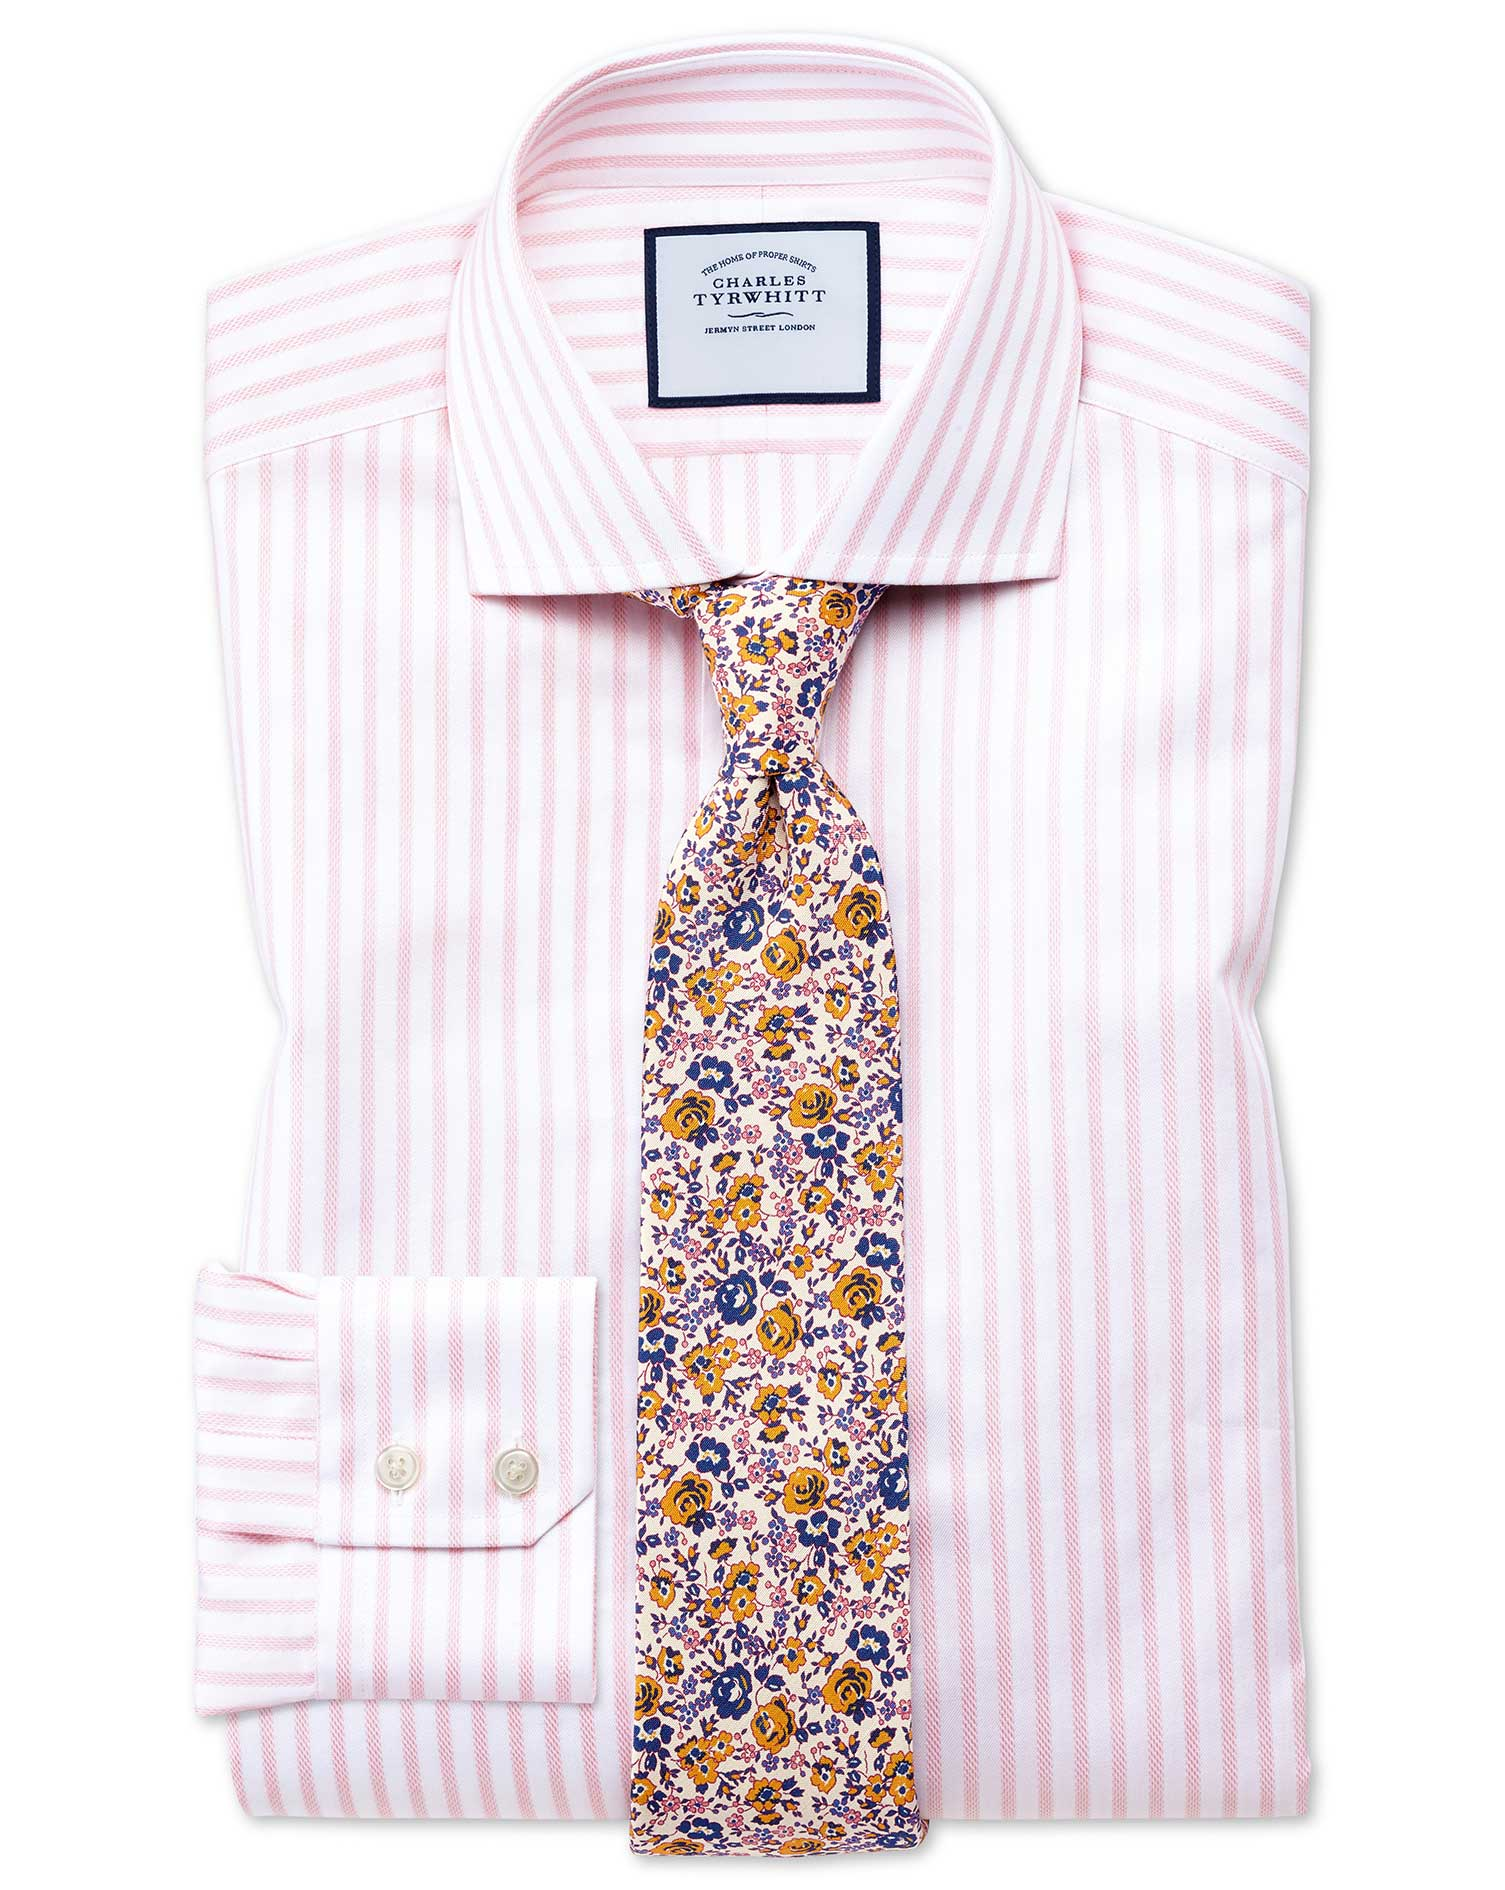 Slim Fit Cutaway Textured Stripe Pink and White Cotton Formal Shirt Single Cuff Size 17.5/34 by Char